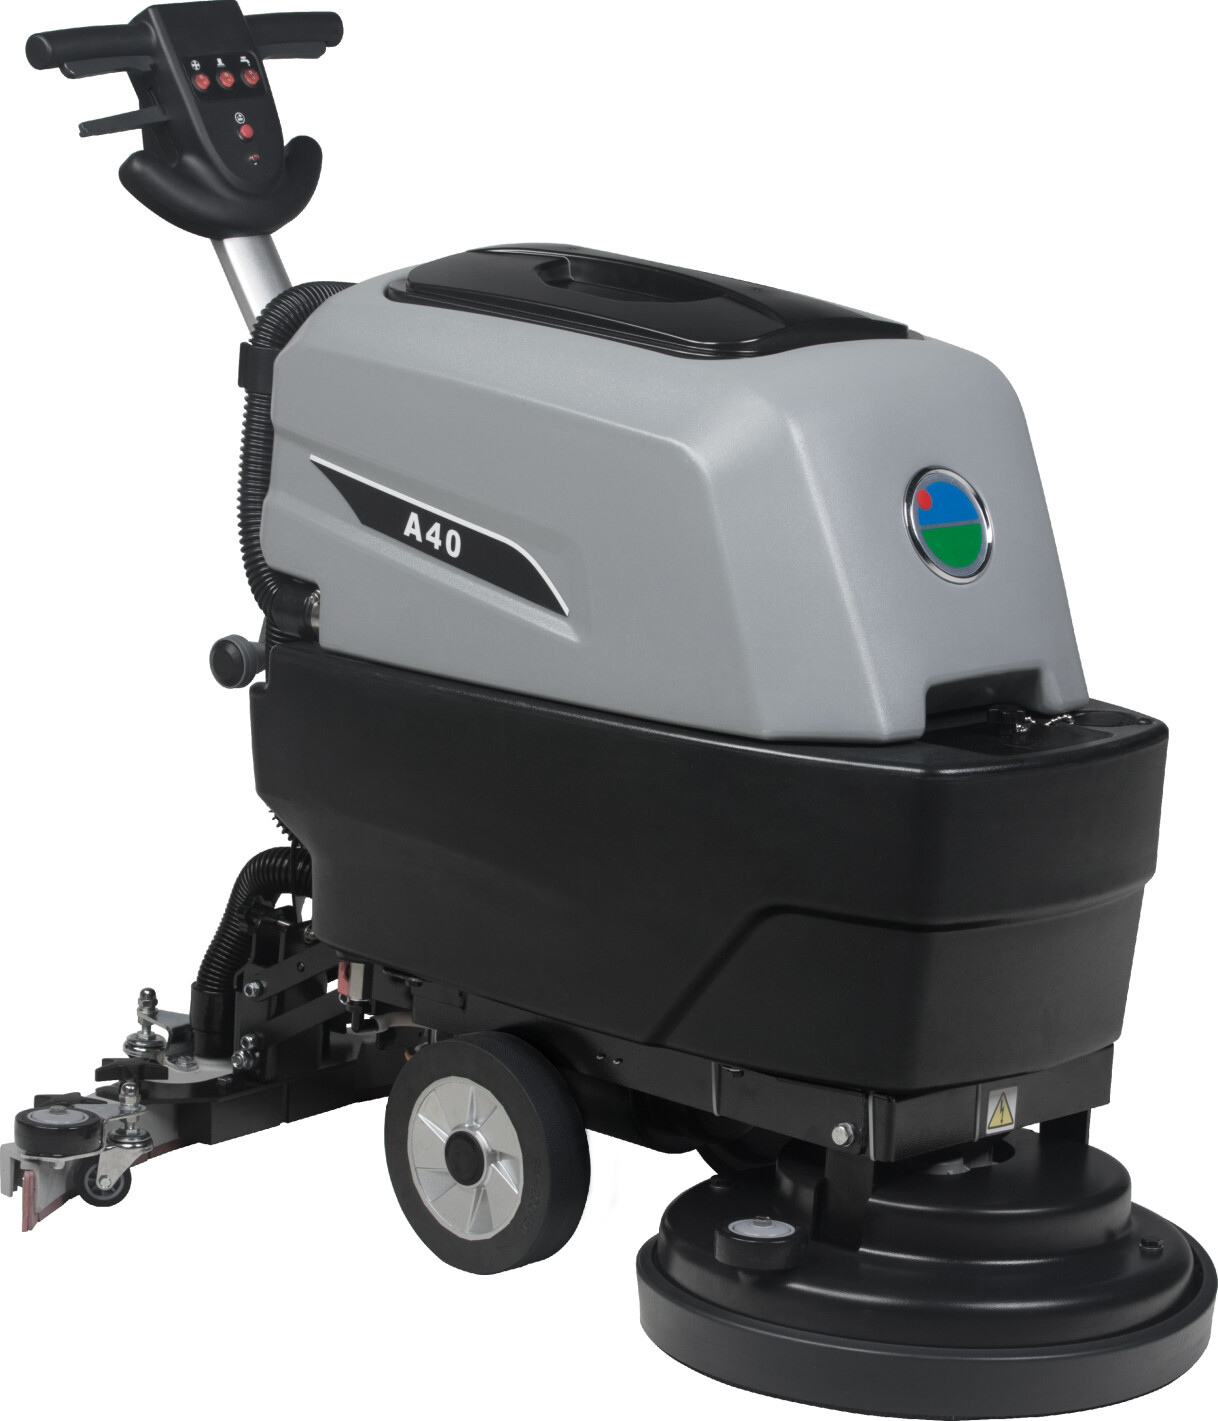 Auto Floor Scrubber Machine 17'' with Battery and Brush